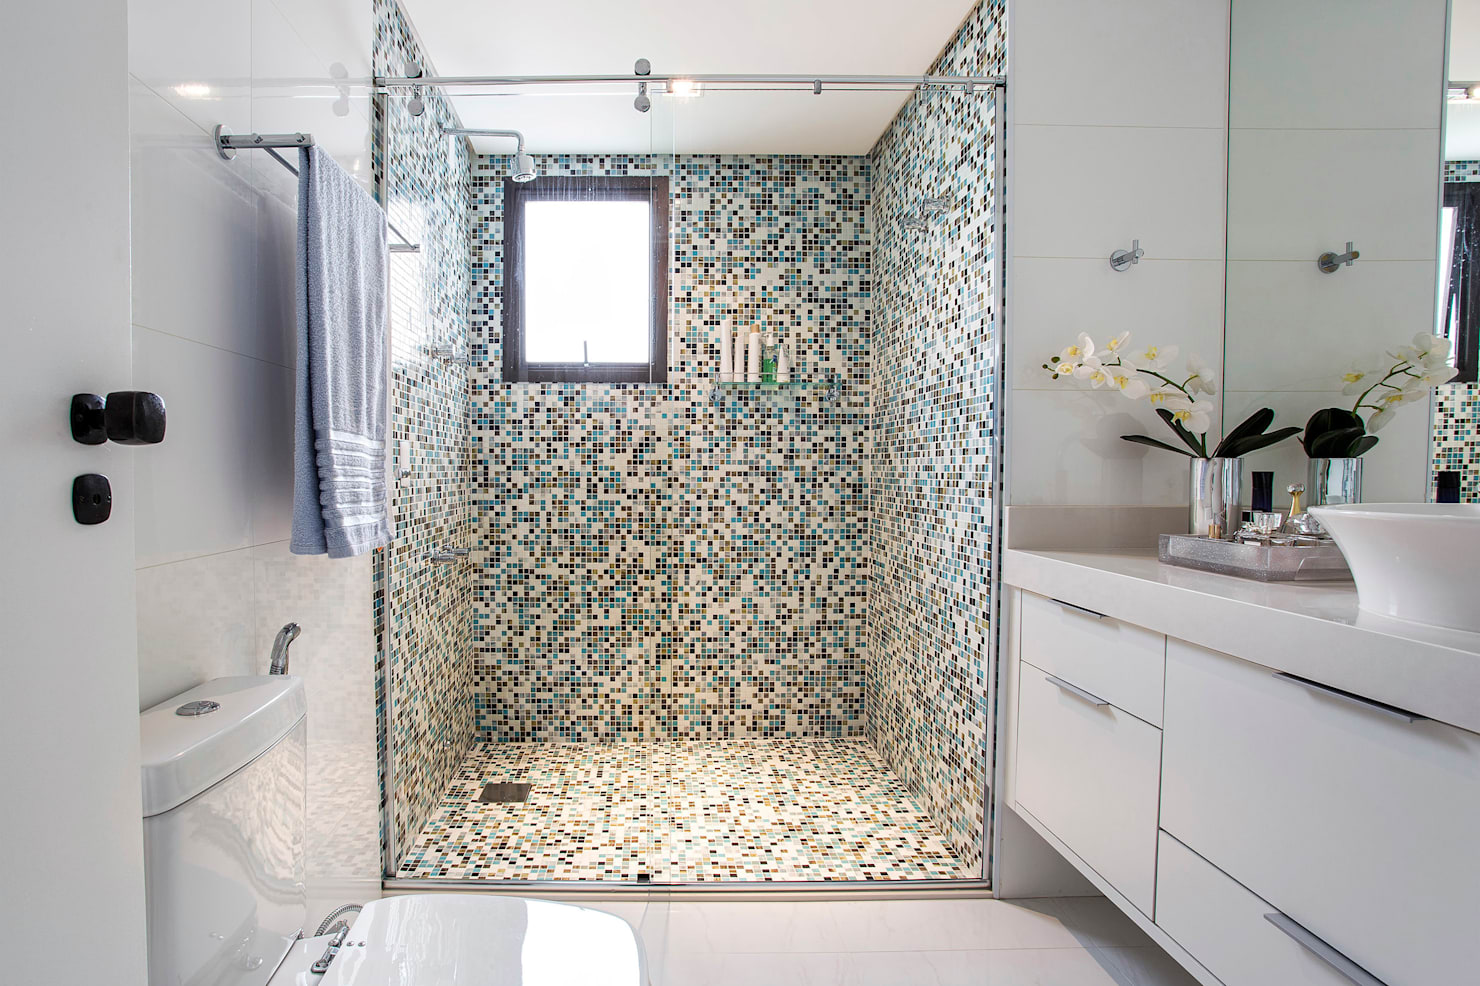 14 Relaxing Bathrooms to Take Inspiration From